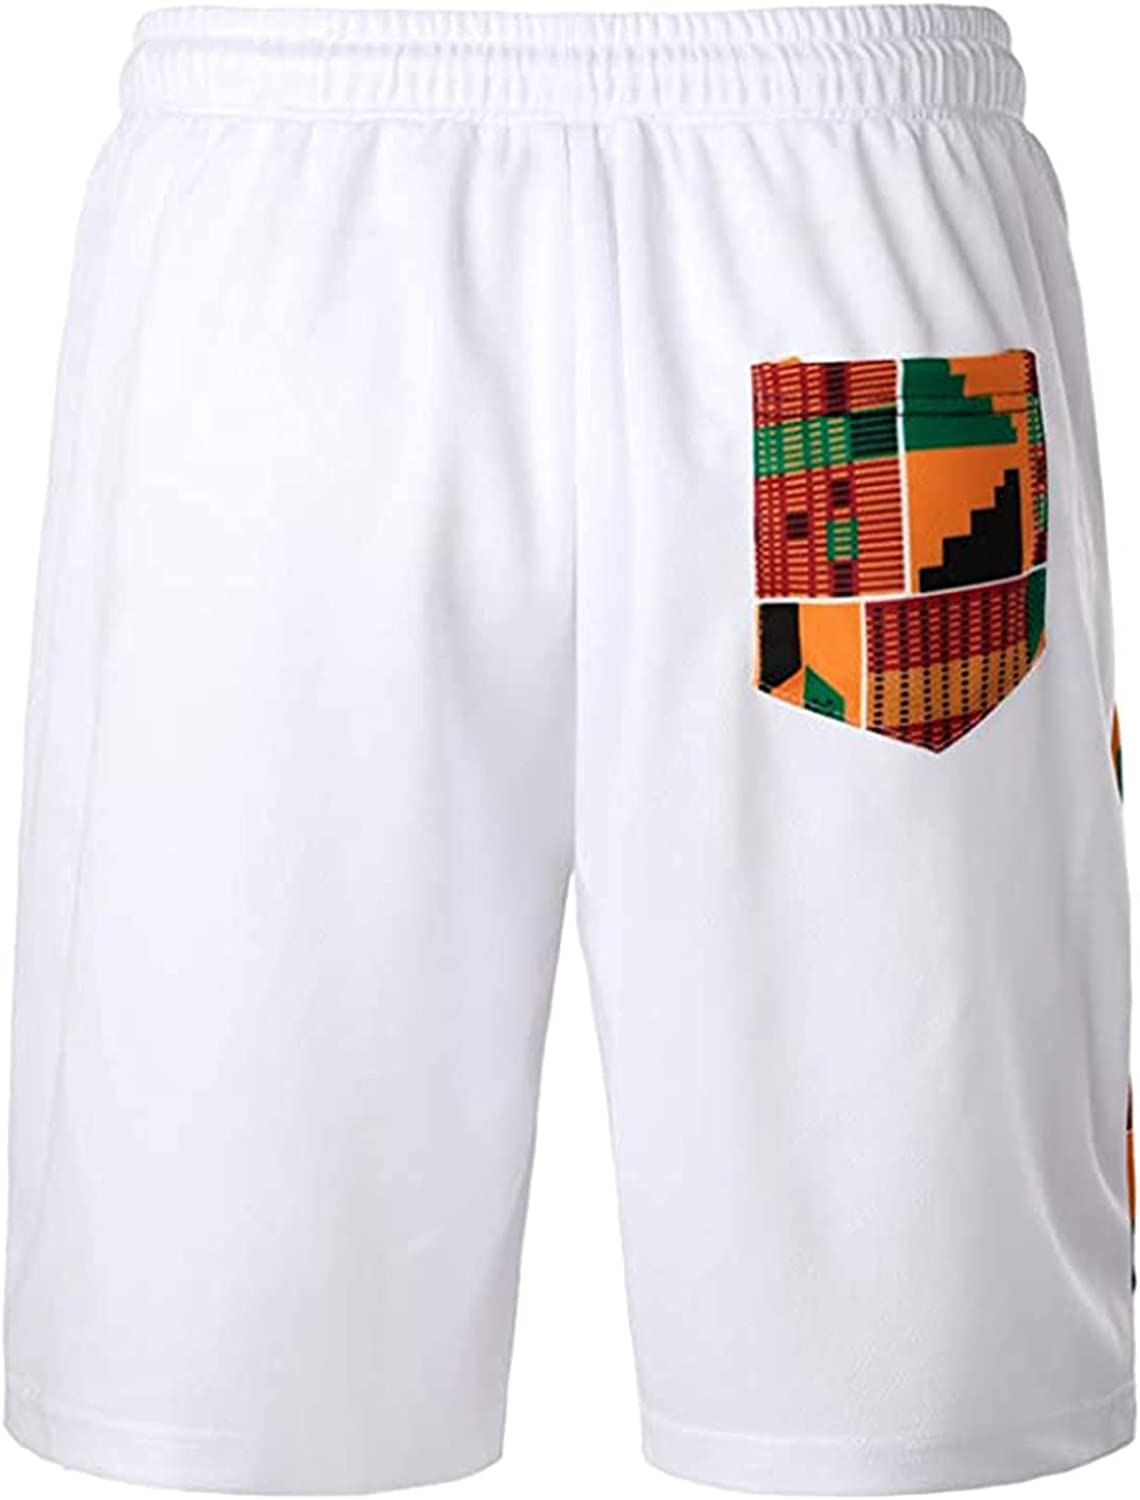 Tantisy Men Shorts Summer Casual Trousers Printing Solid Color Loose Quick-drying Shorts Beach Pants Five-point Pants